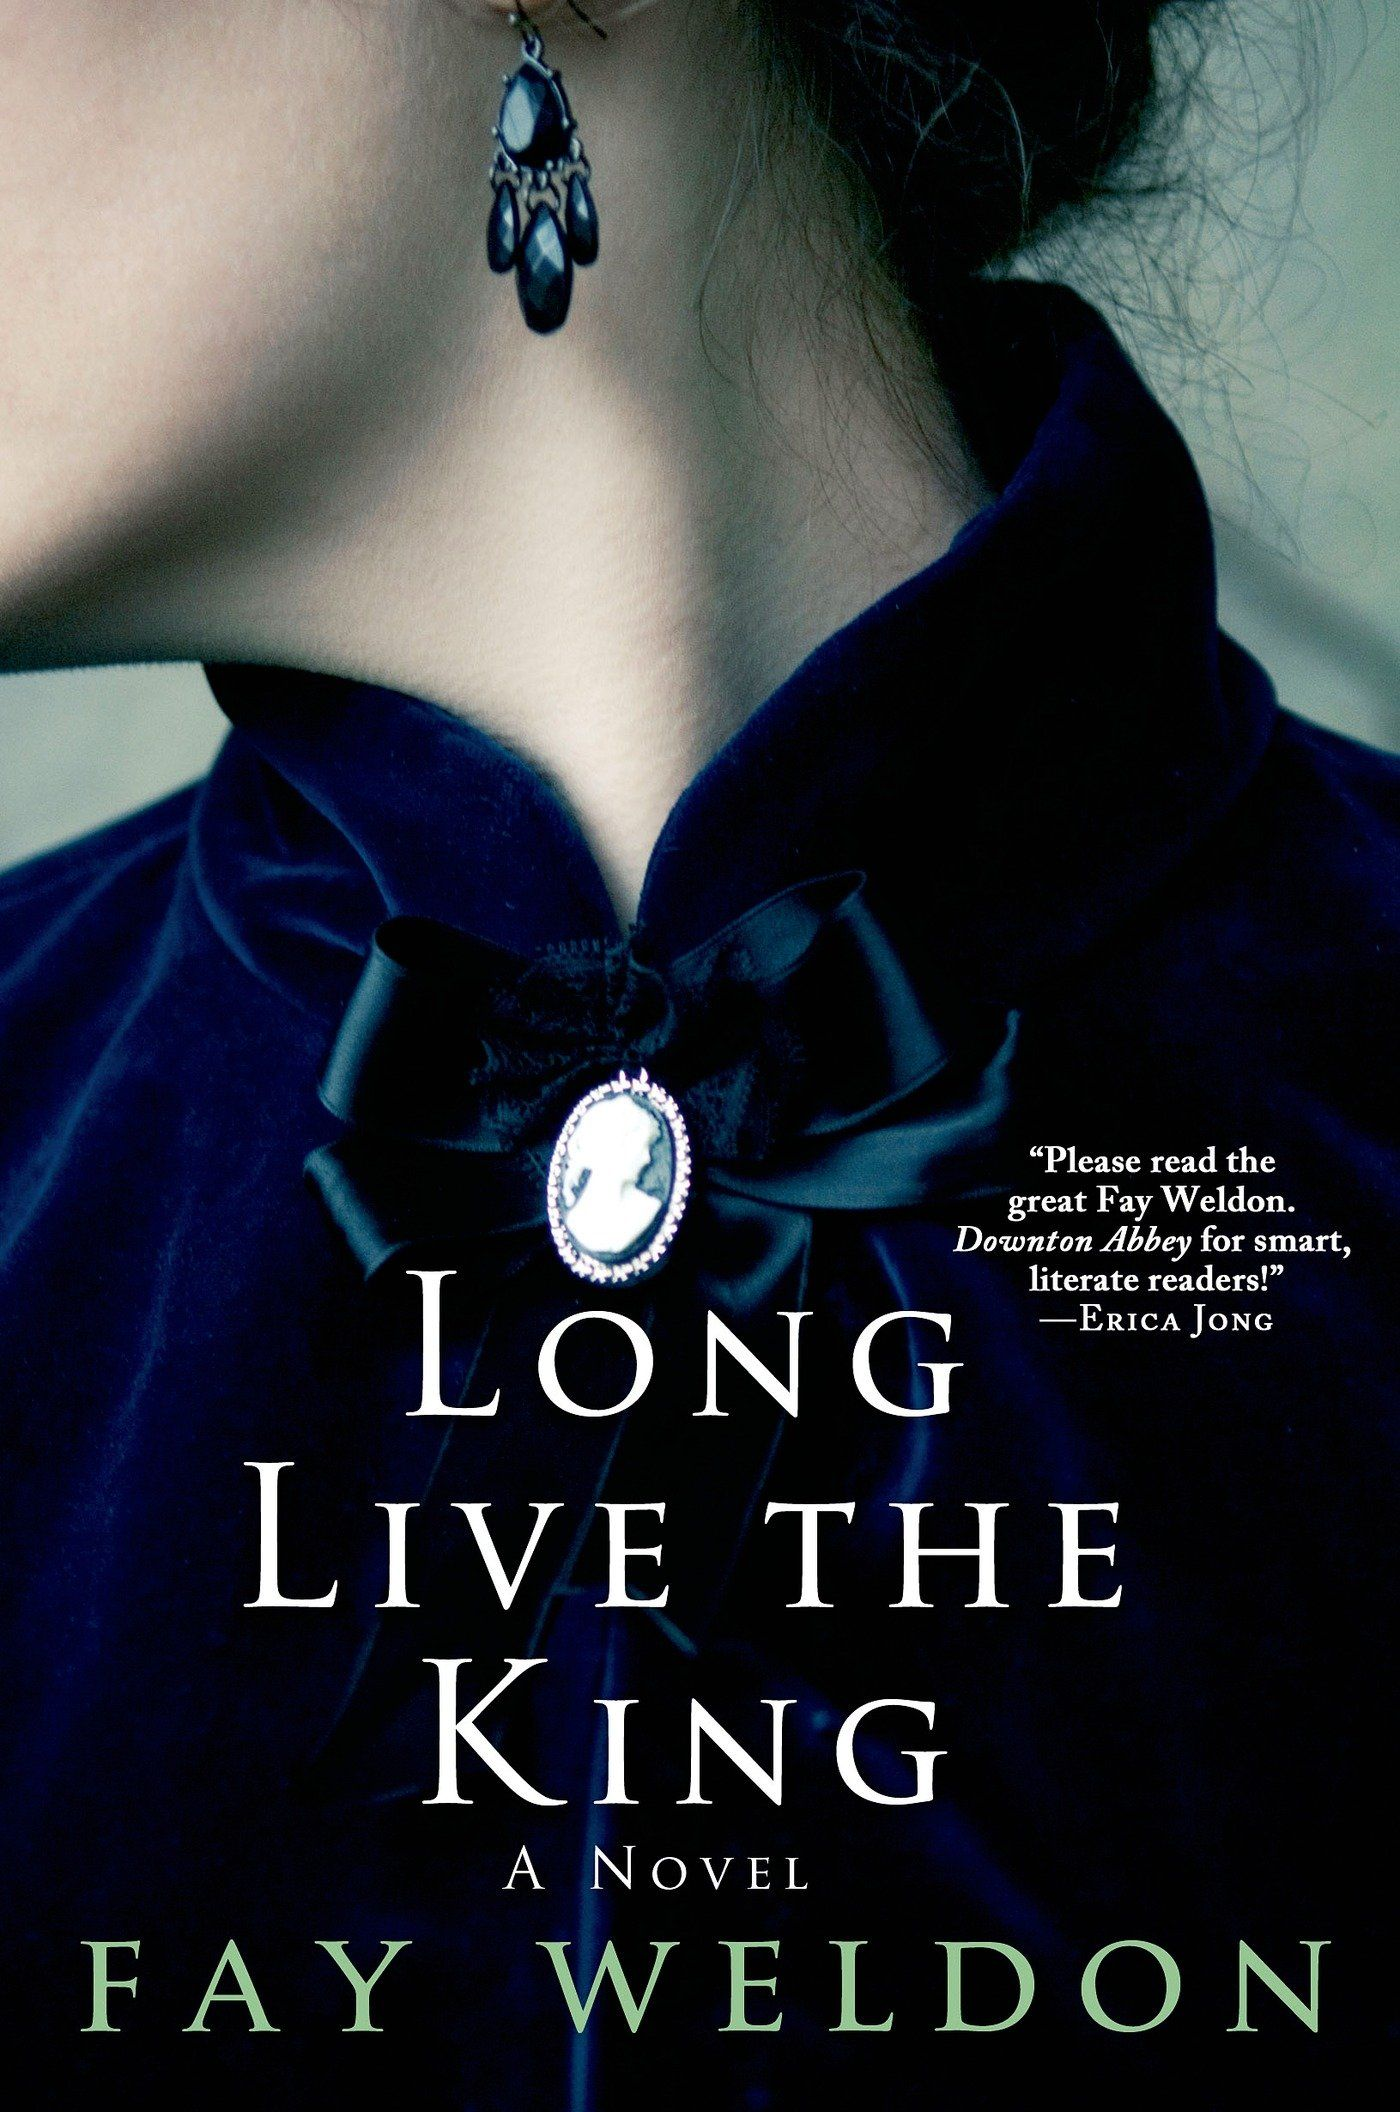 If you liked Downton Abbey, try reading Long Live the King.  Place a hold today at catalog.wlnonline.org